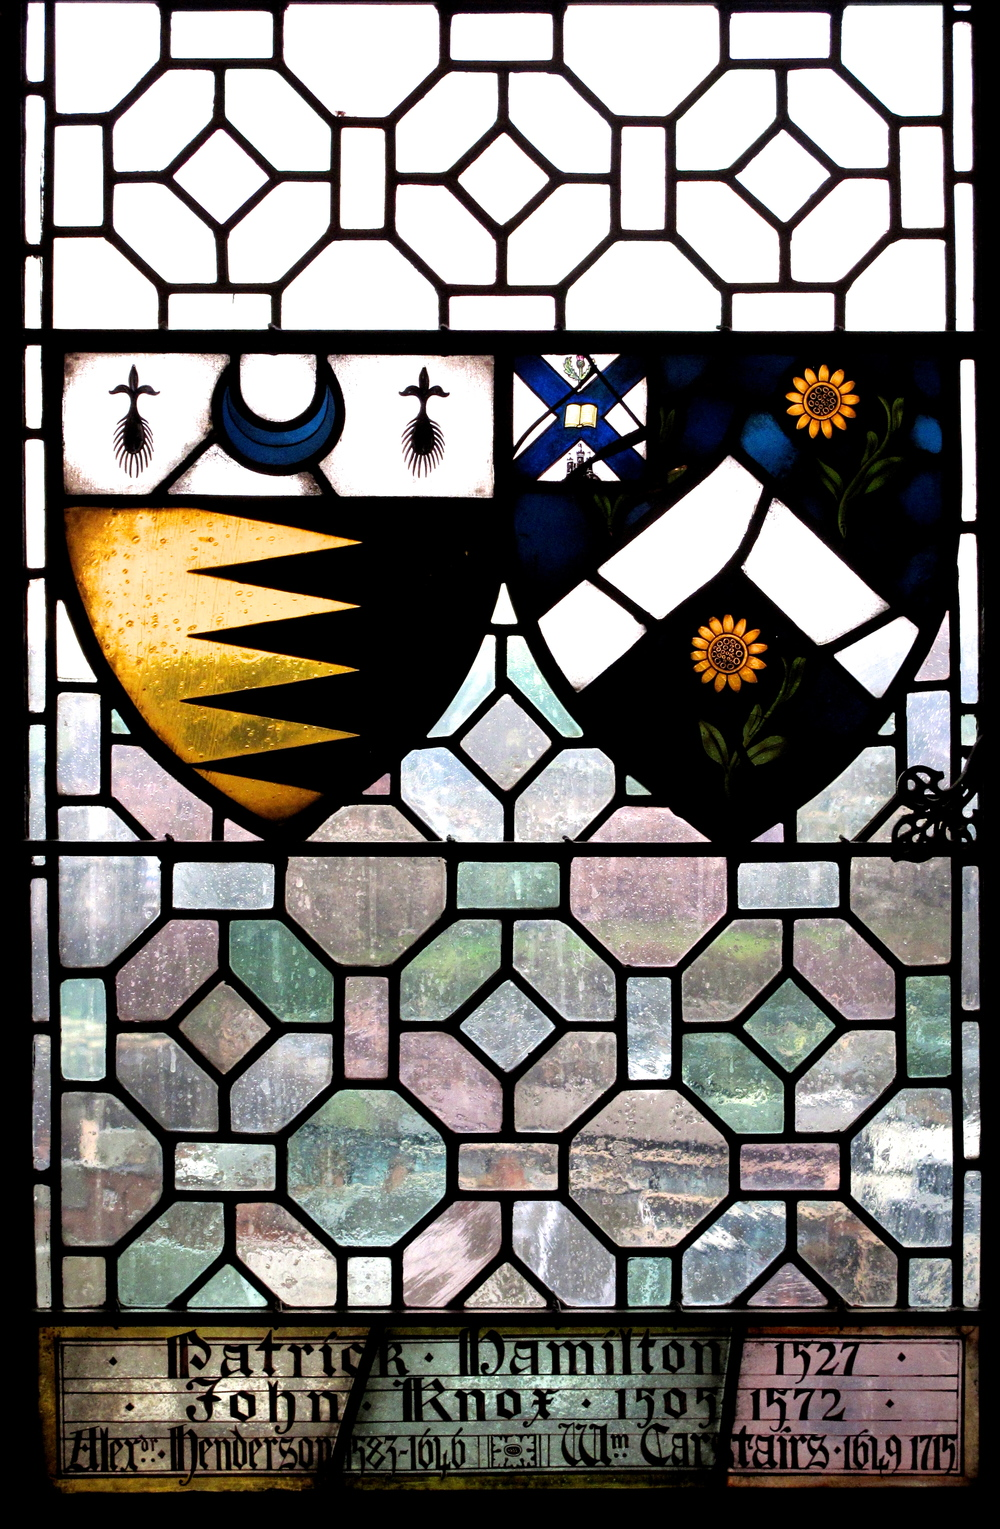 Stained glass patterns and knights coats of arms